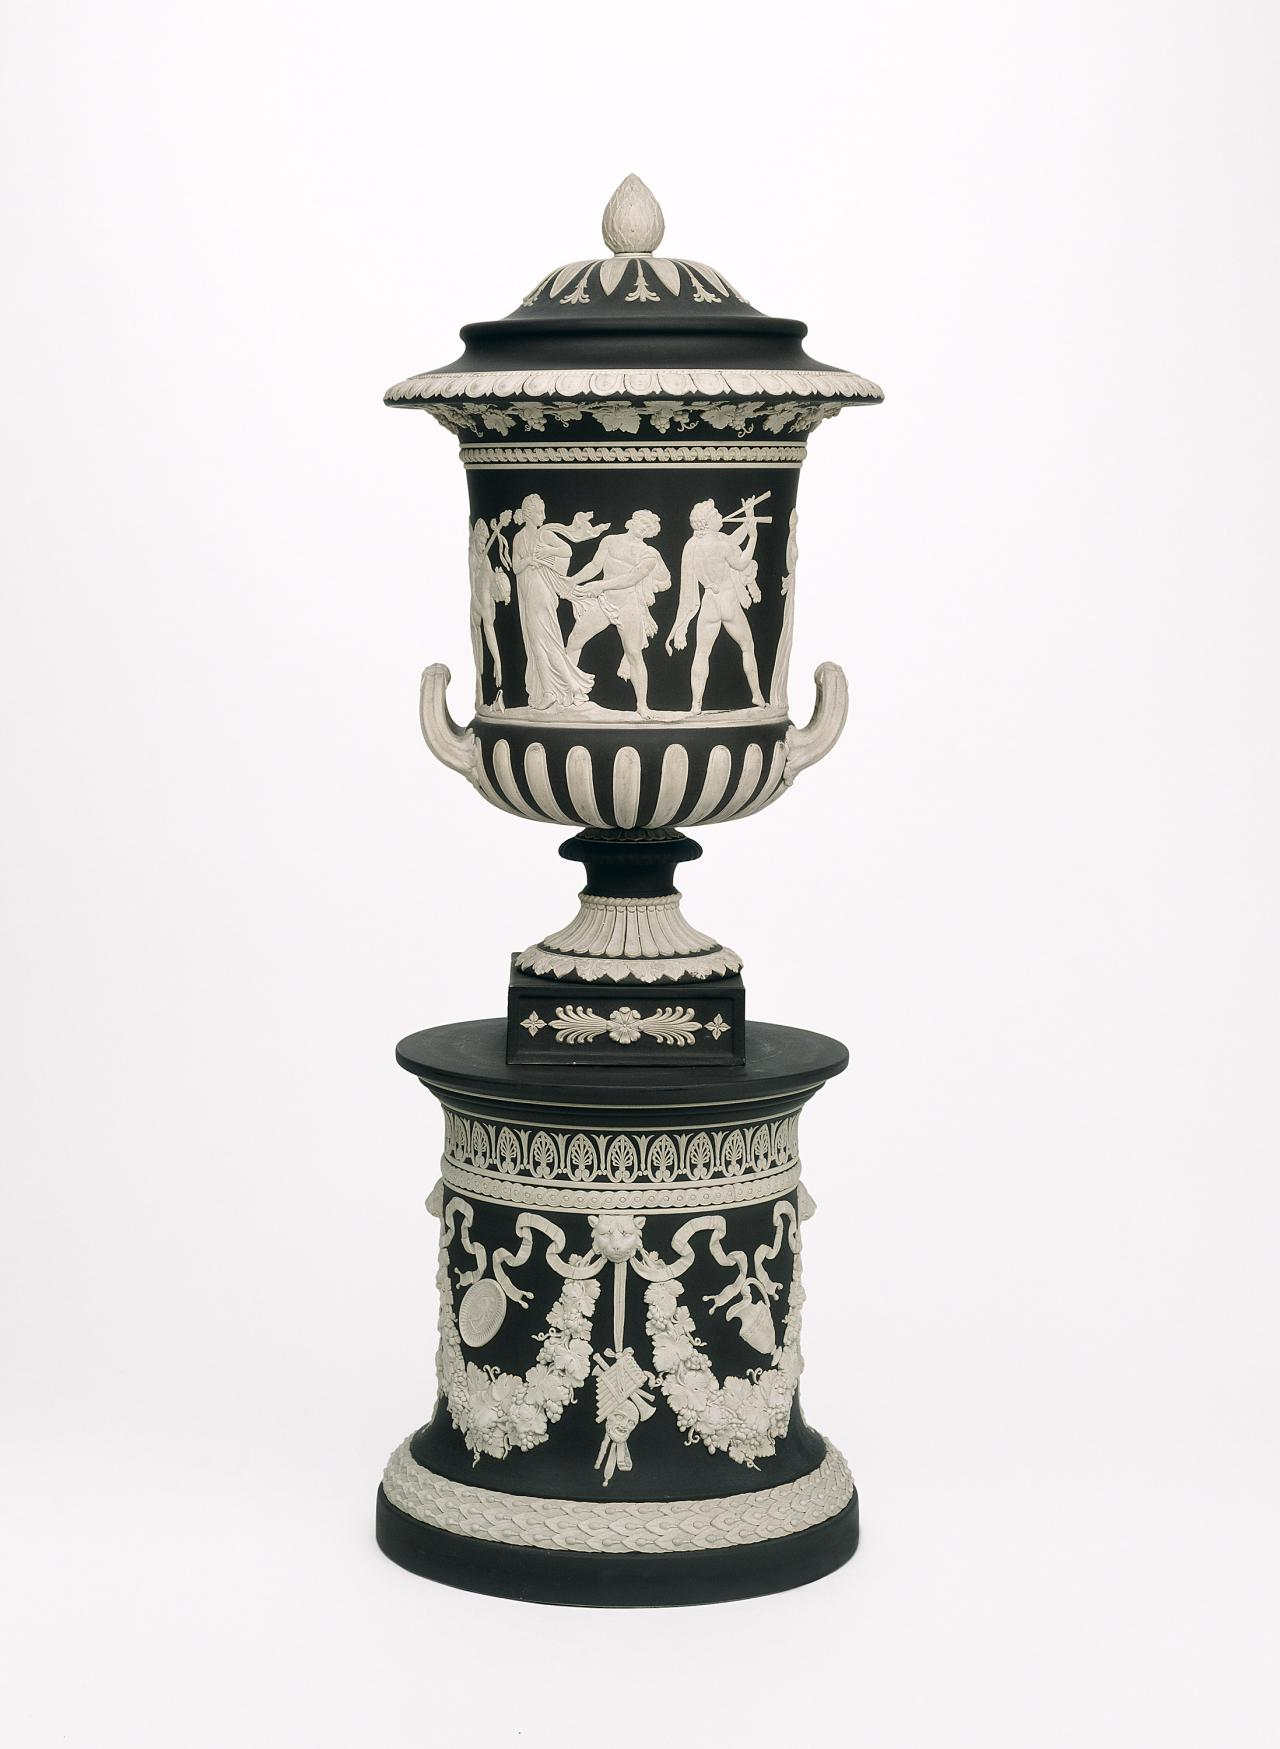 Borghese, covered vase and pedestal